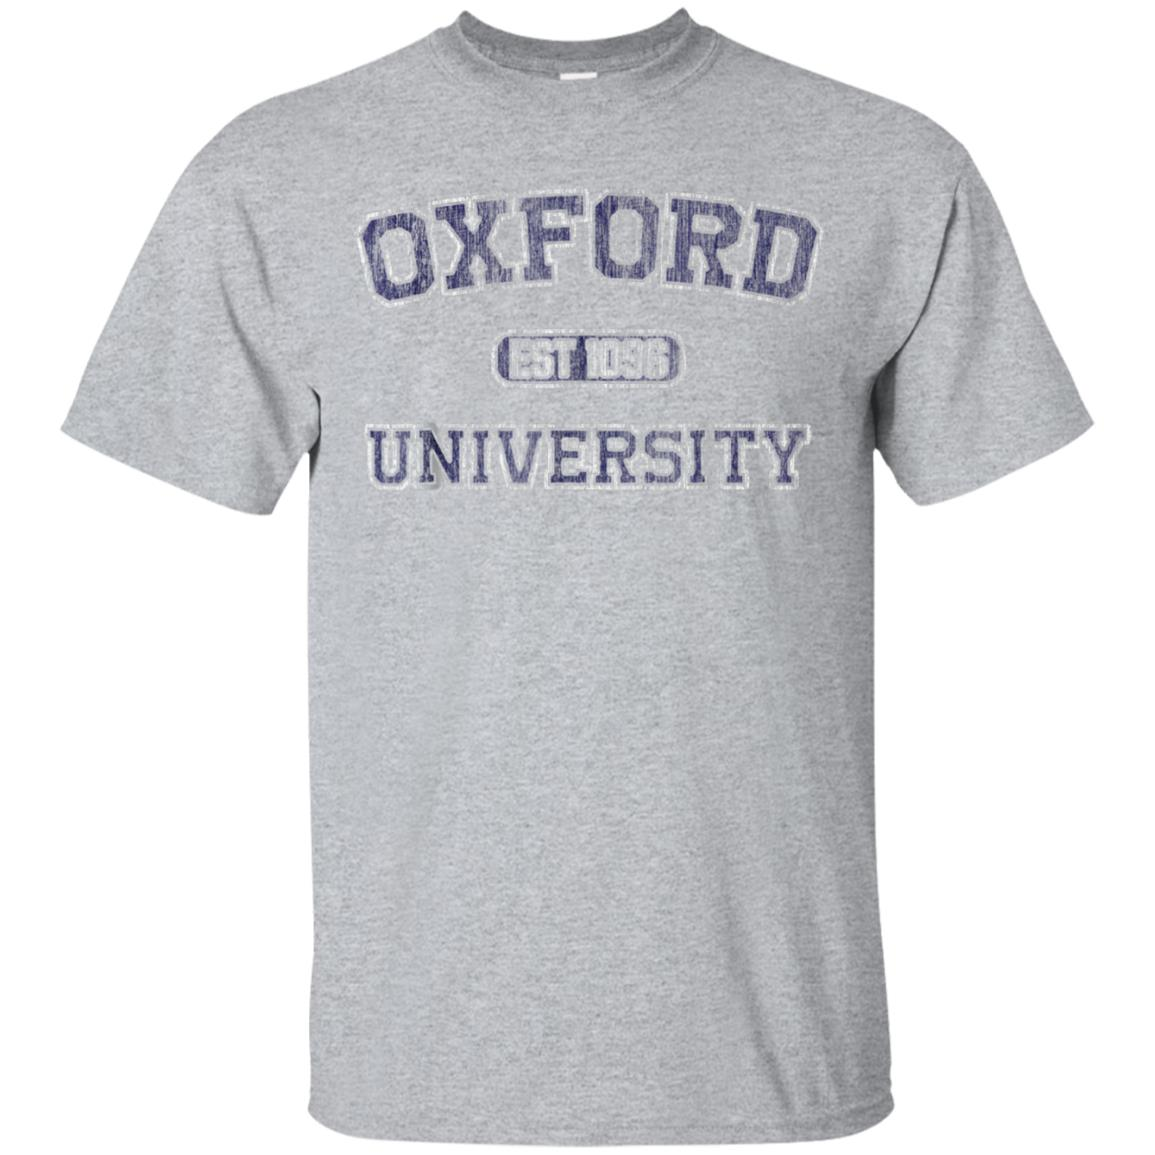 OXFORD UNIVERSITY T-SHIRT DISTRESSED TEE RETRO SHIRT VINTAGE 99promocode